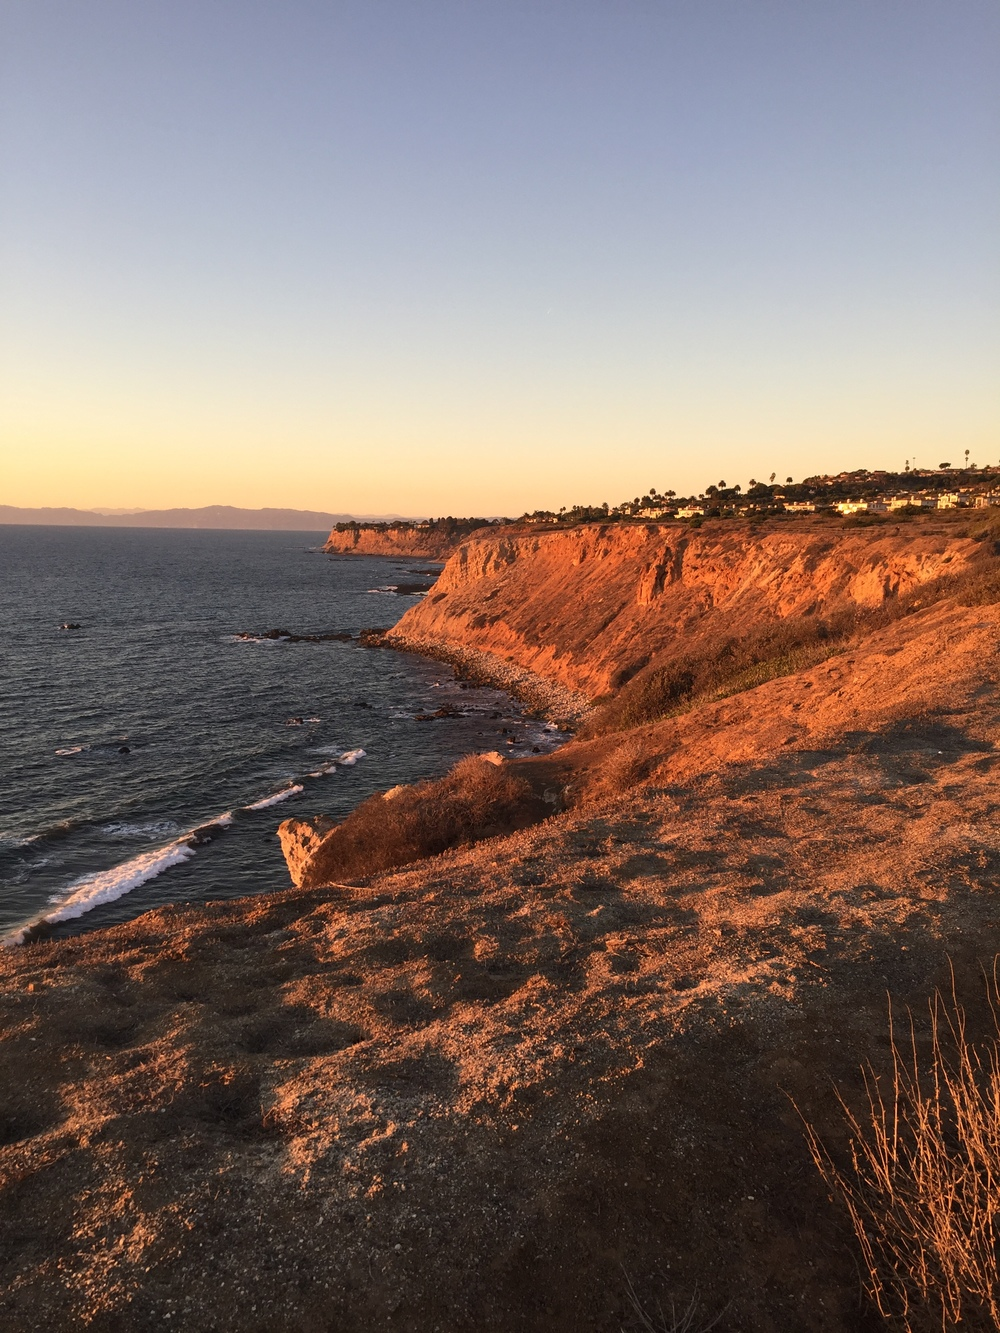 Golden Hour along the coast at Ranchos Palos Verdes.